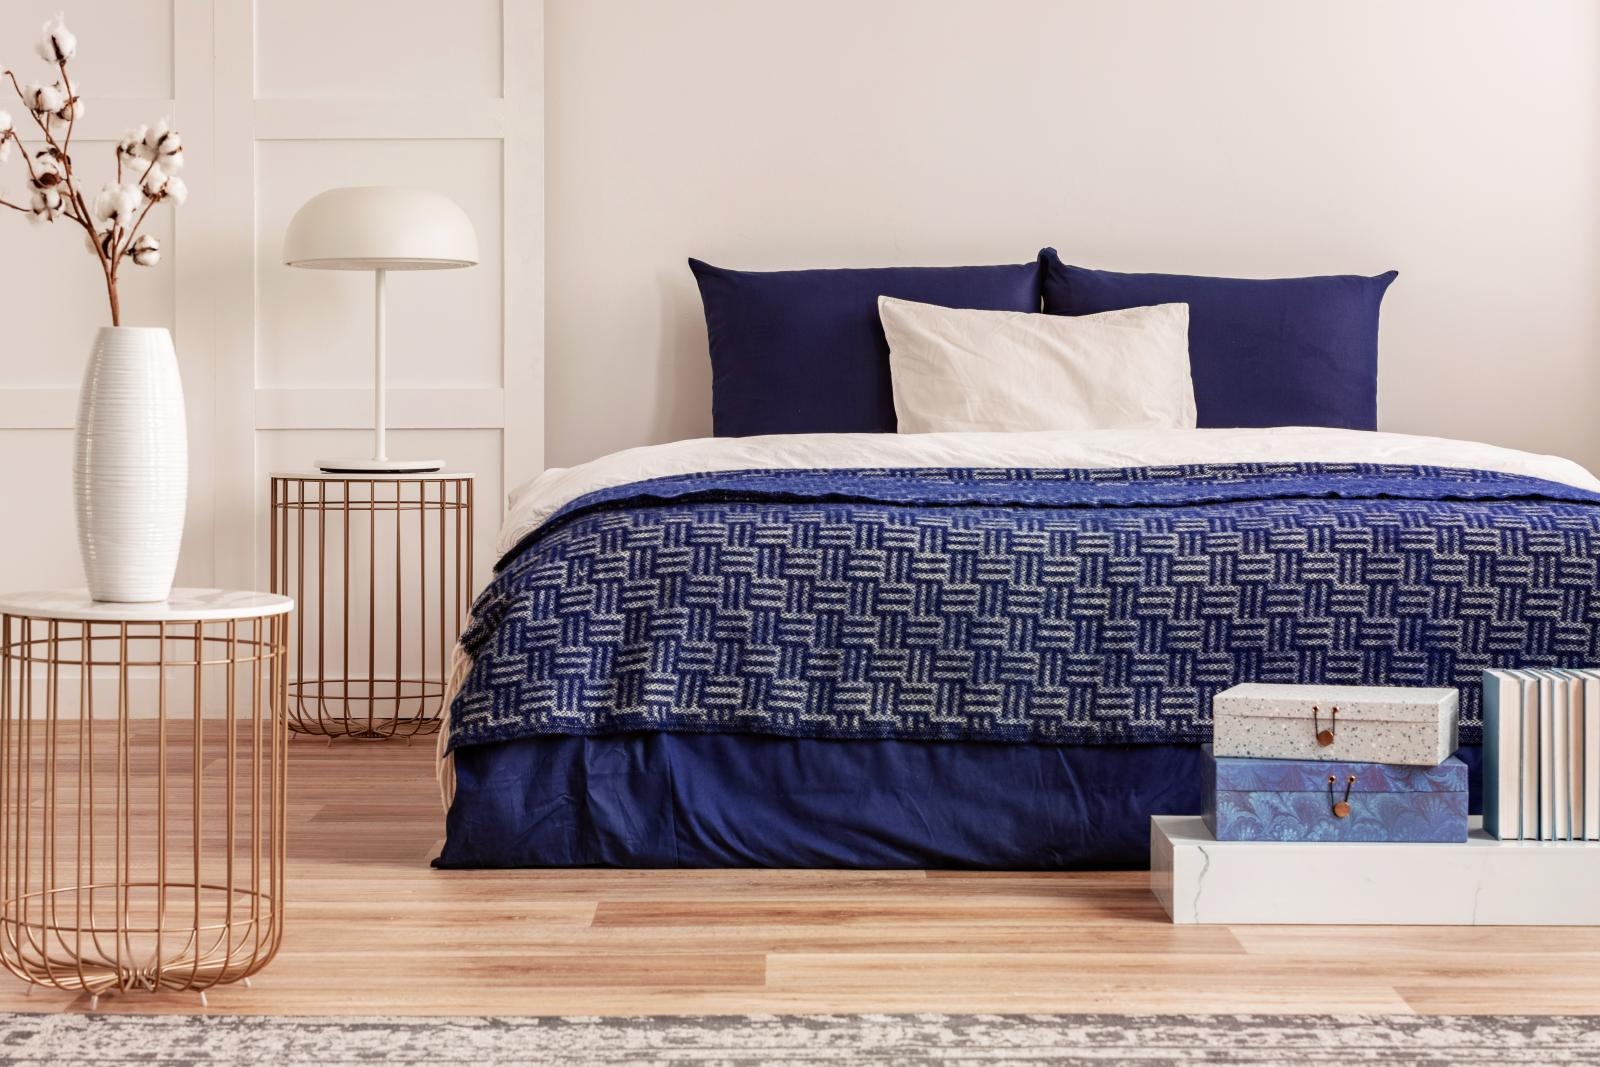 King size bed with navy blue bedding